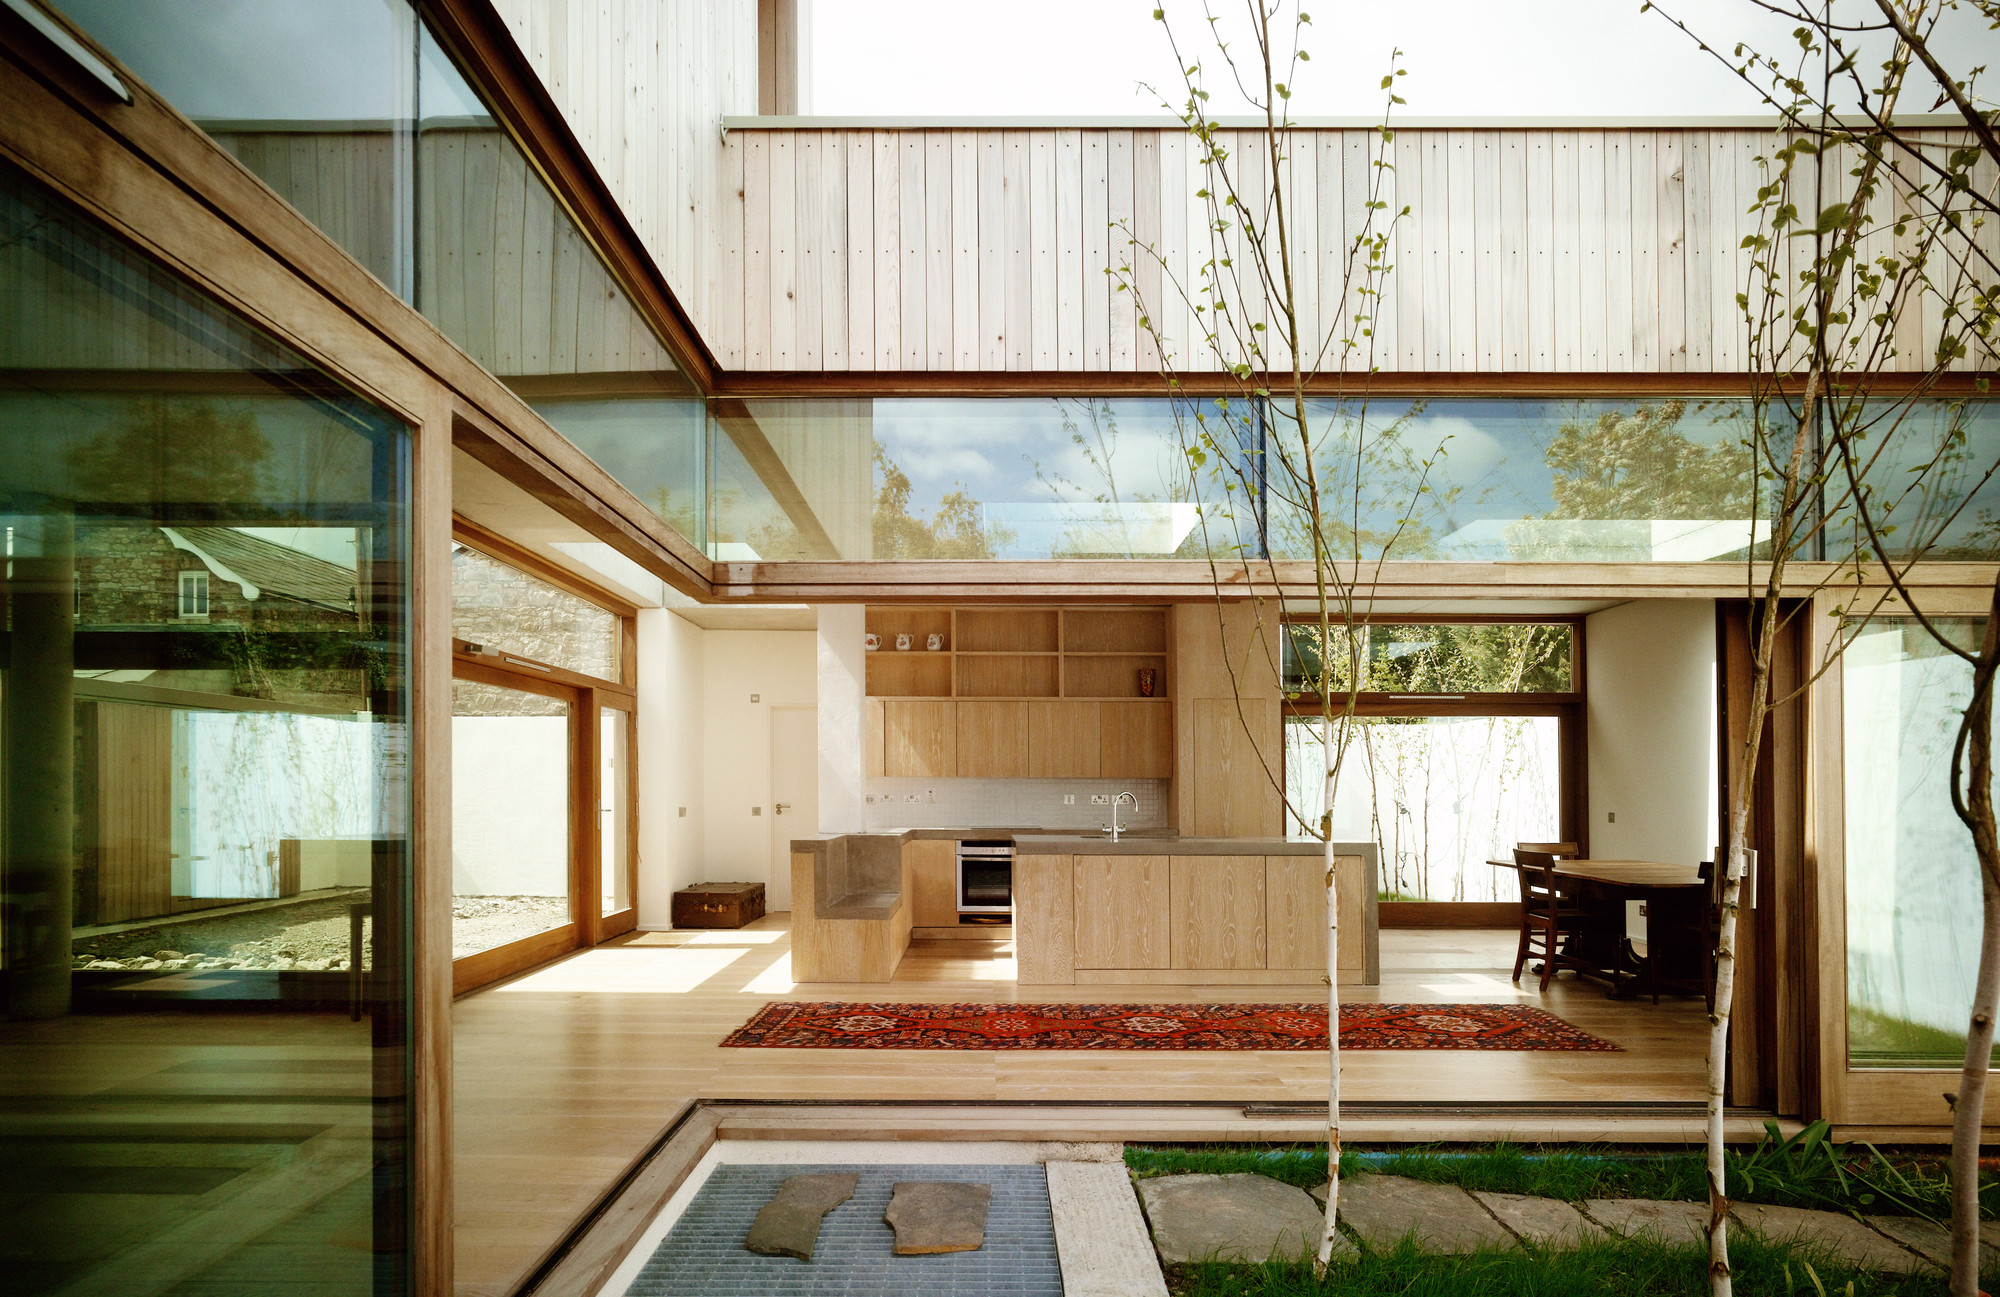 Z-Casa Quadrada / Mccullough Mulvin Architects, © Henrietta Williams / Mary-Louise Halpenny